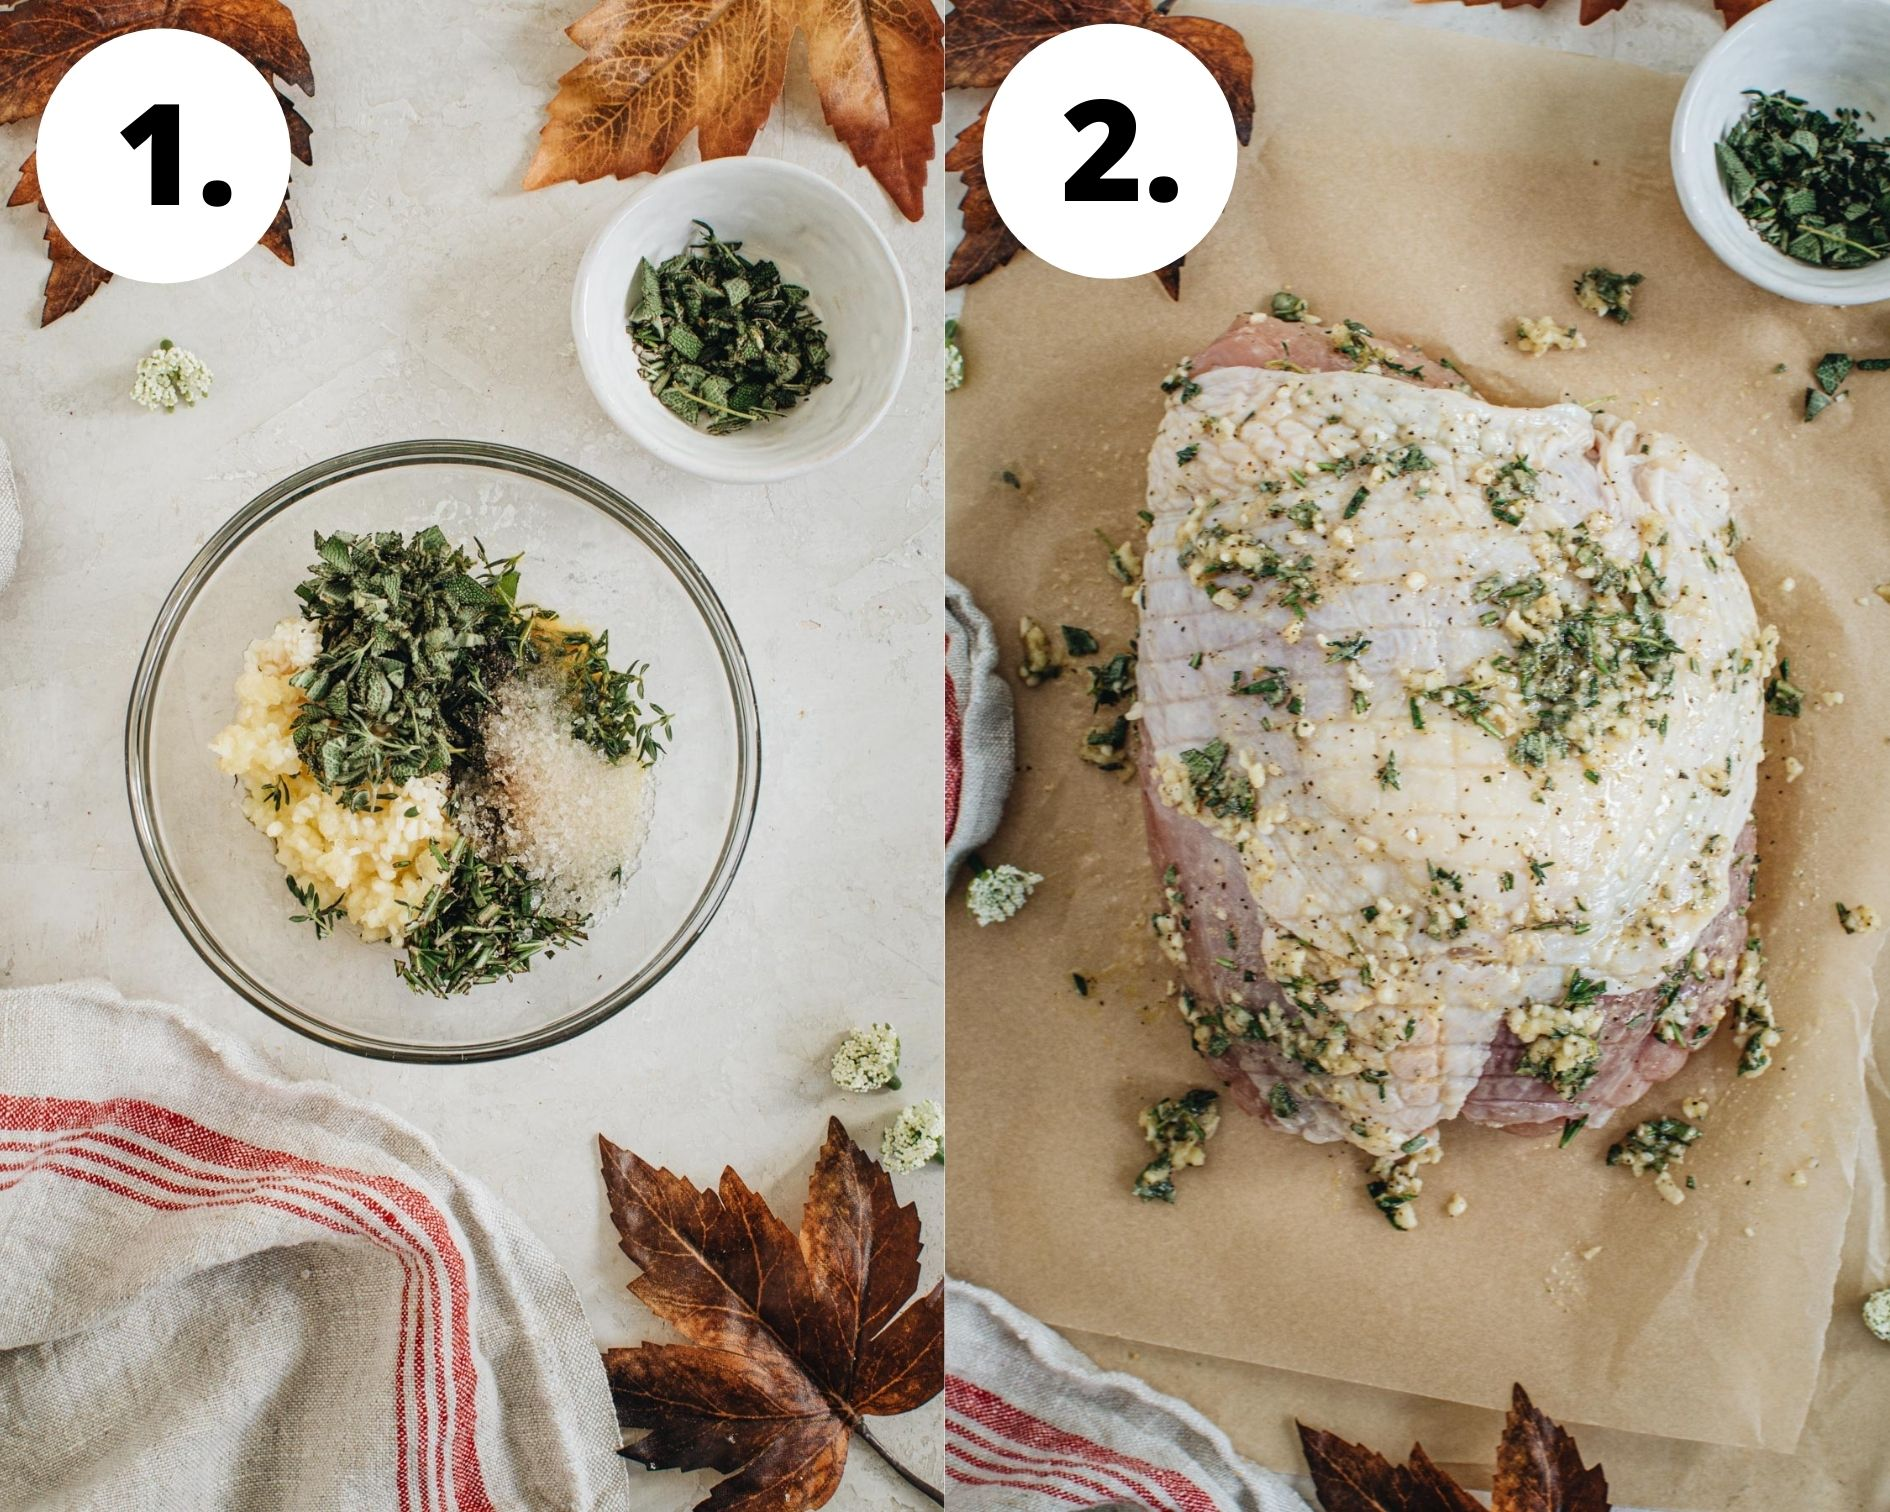 Oven-roasted turkey breast process steps 1 and 2.